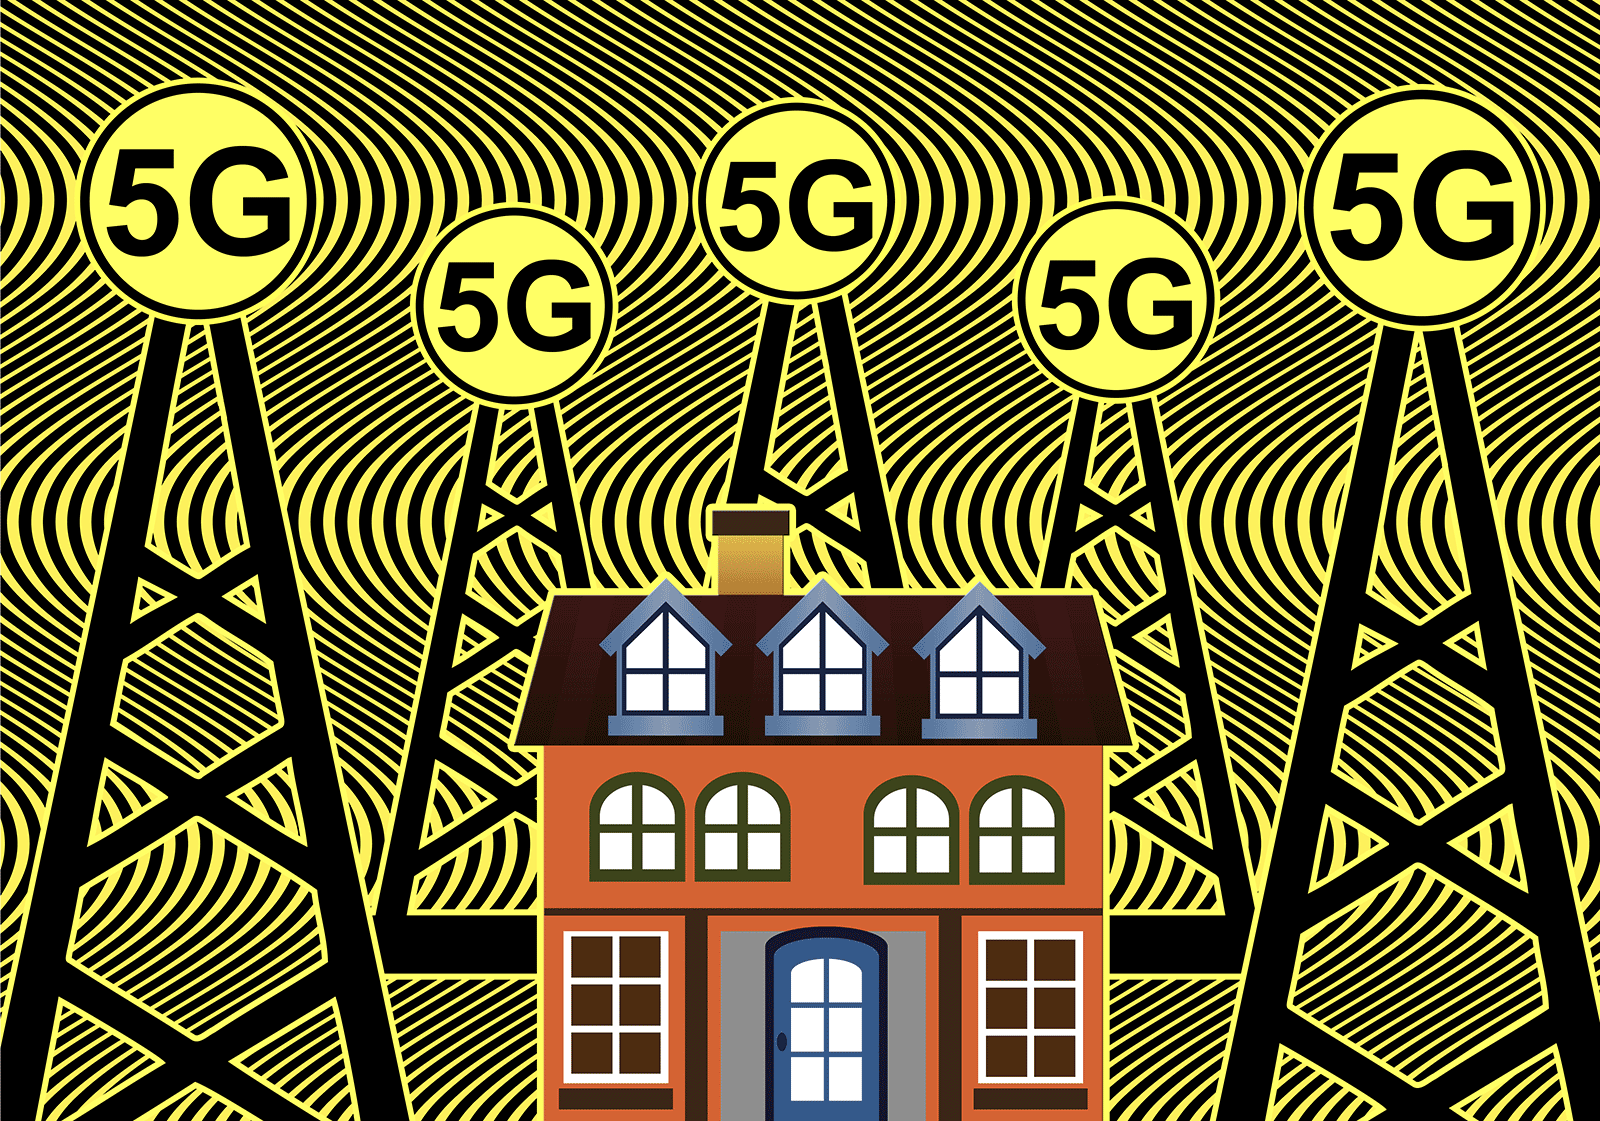 5G Radiation Home Inspection – Testing Service